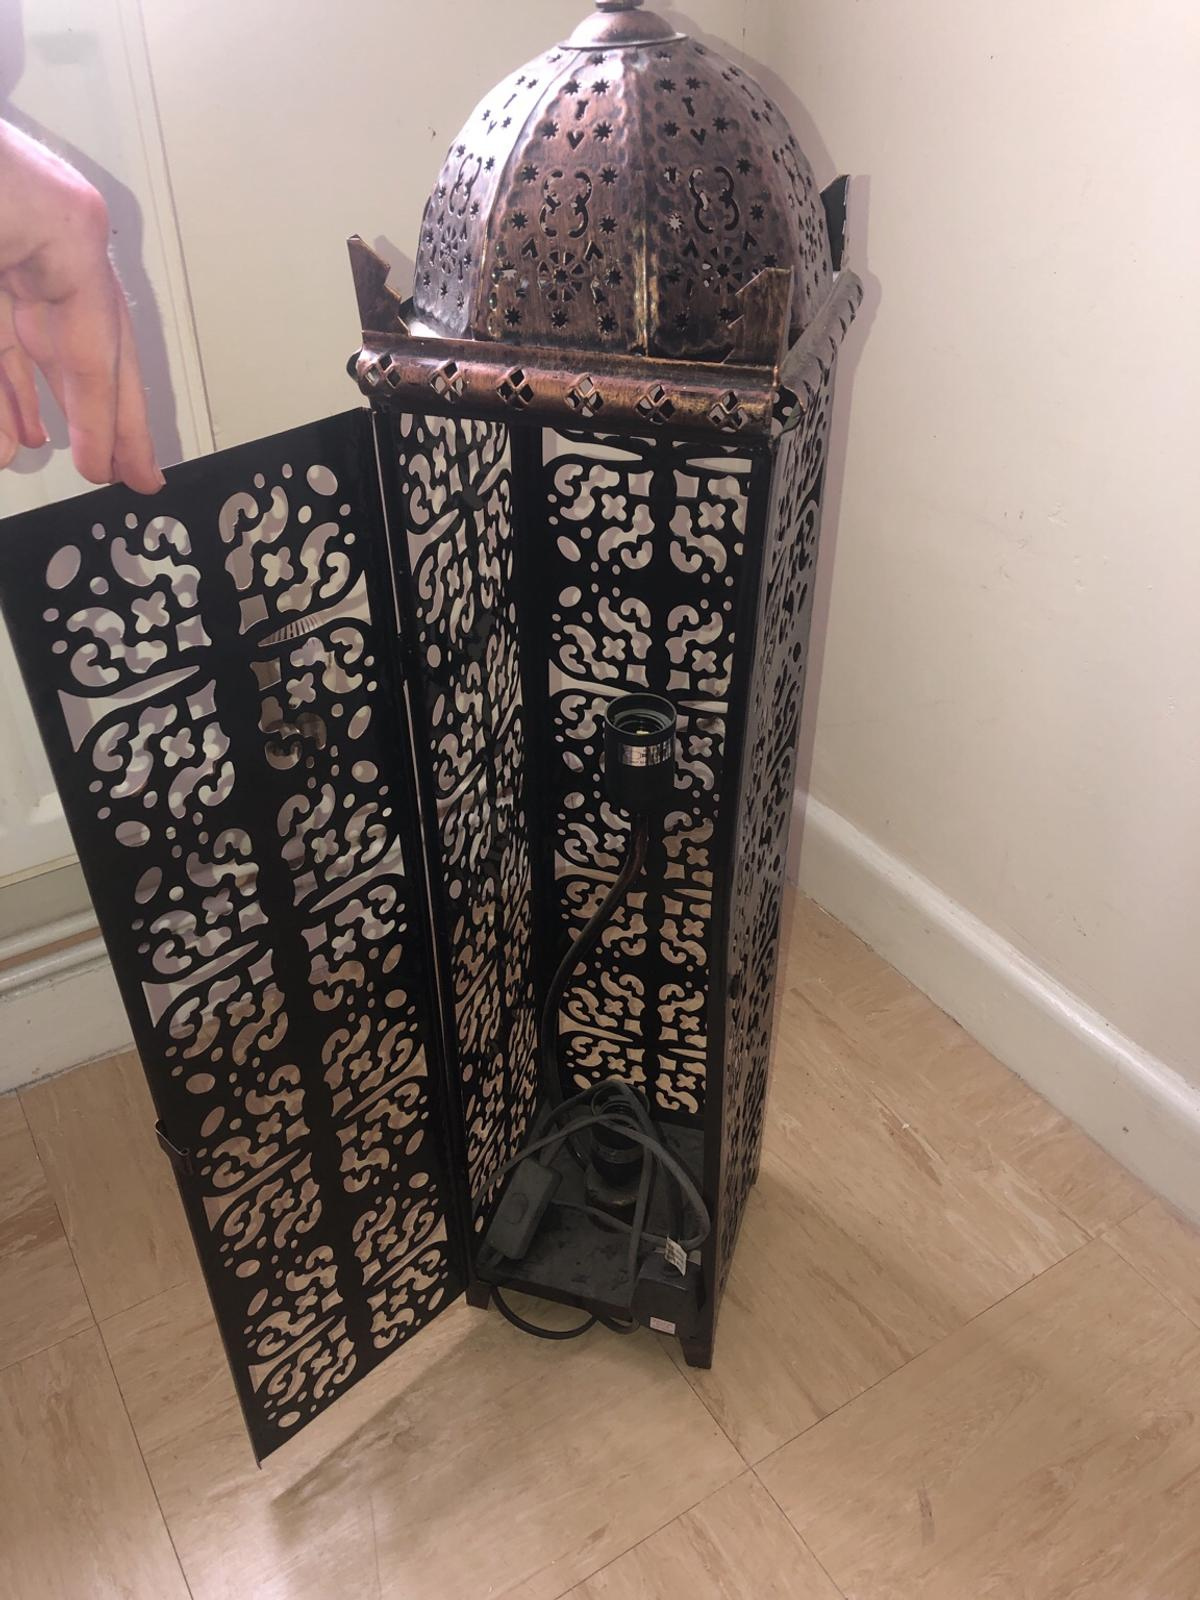 Indian style lamp